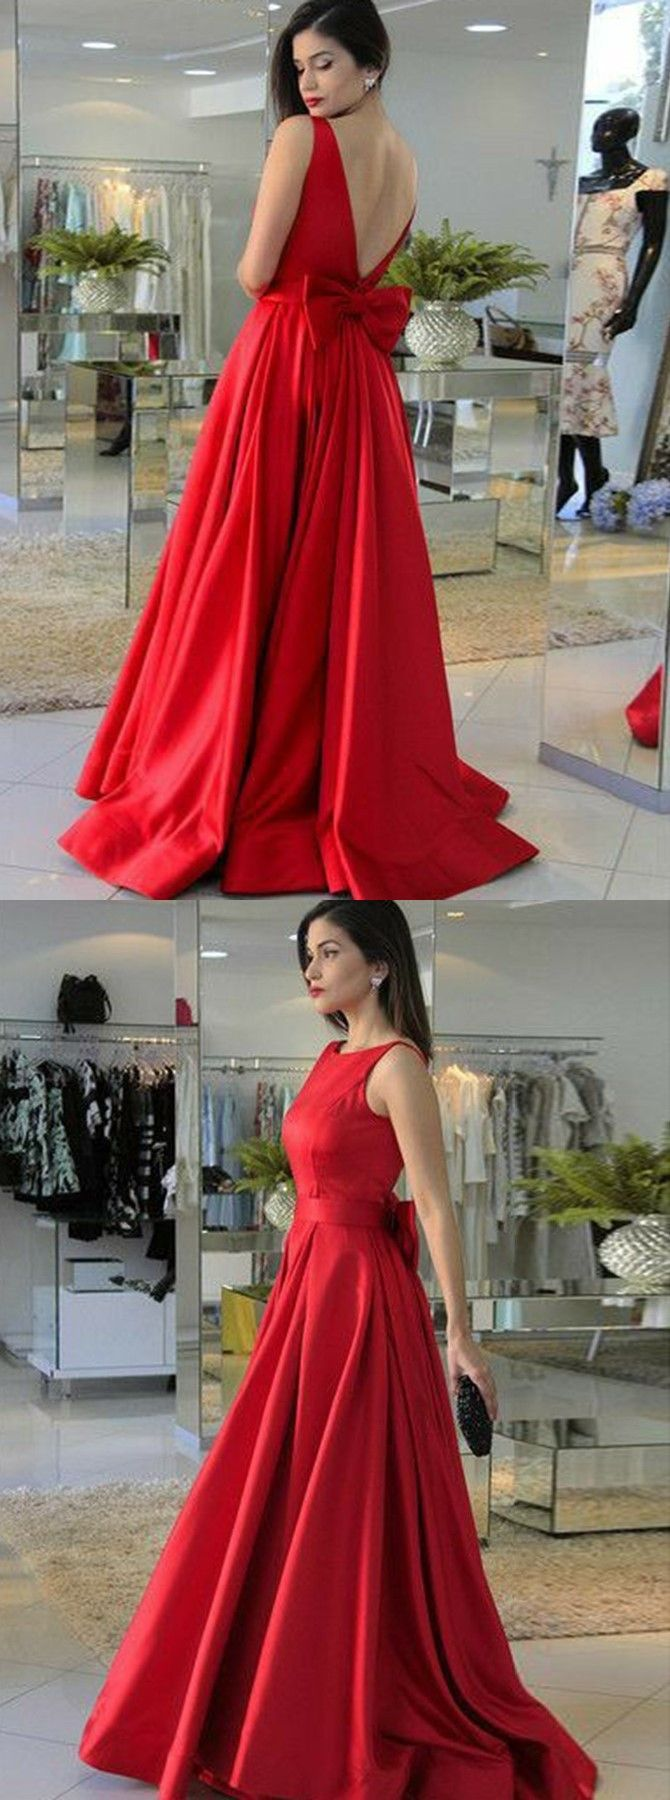 Aline round neck red satin prom dress with bowknot in pprom